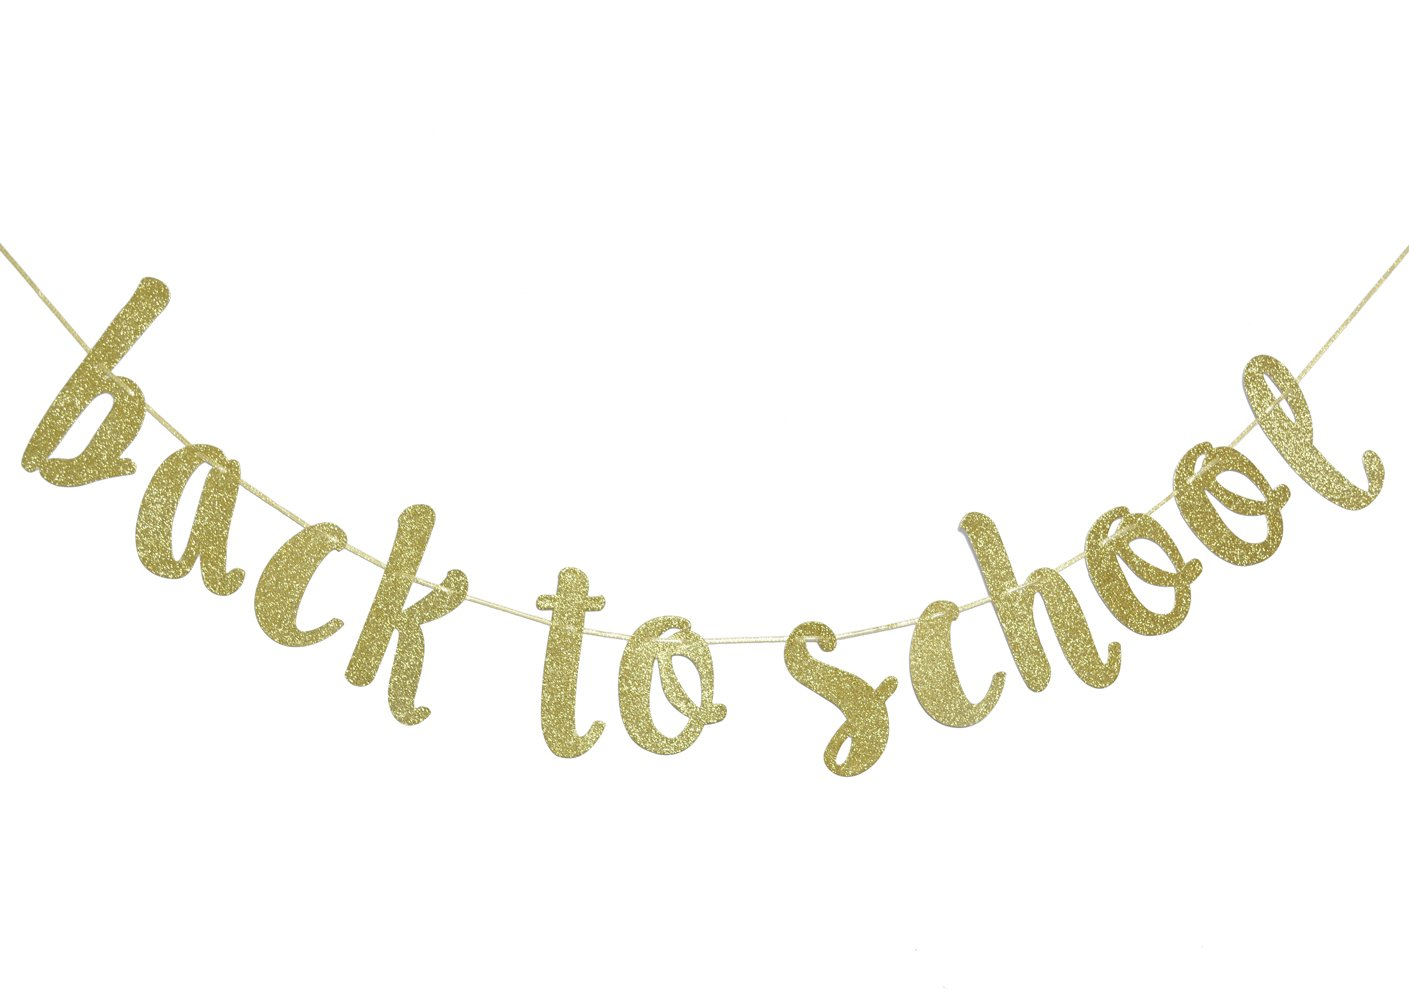 Back to School Gold Glitter Banner for First Day of School Teacher Banner Classroom Decor Decoration Home Schoolyard Party Supplies Cursive Bunting Photo Booth Props Sign